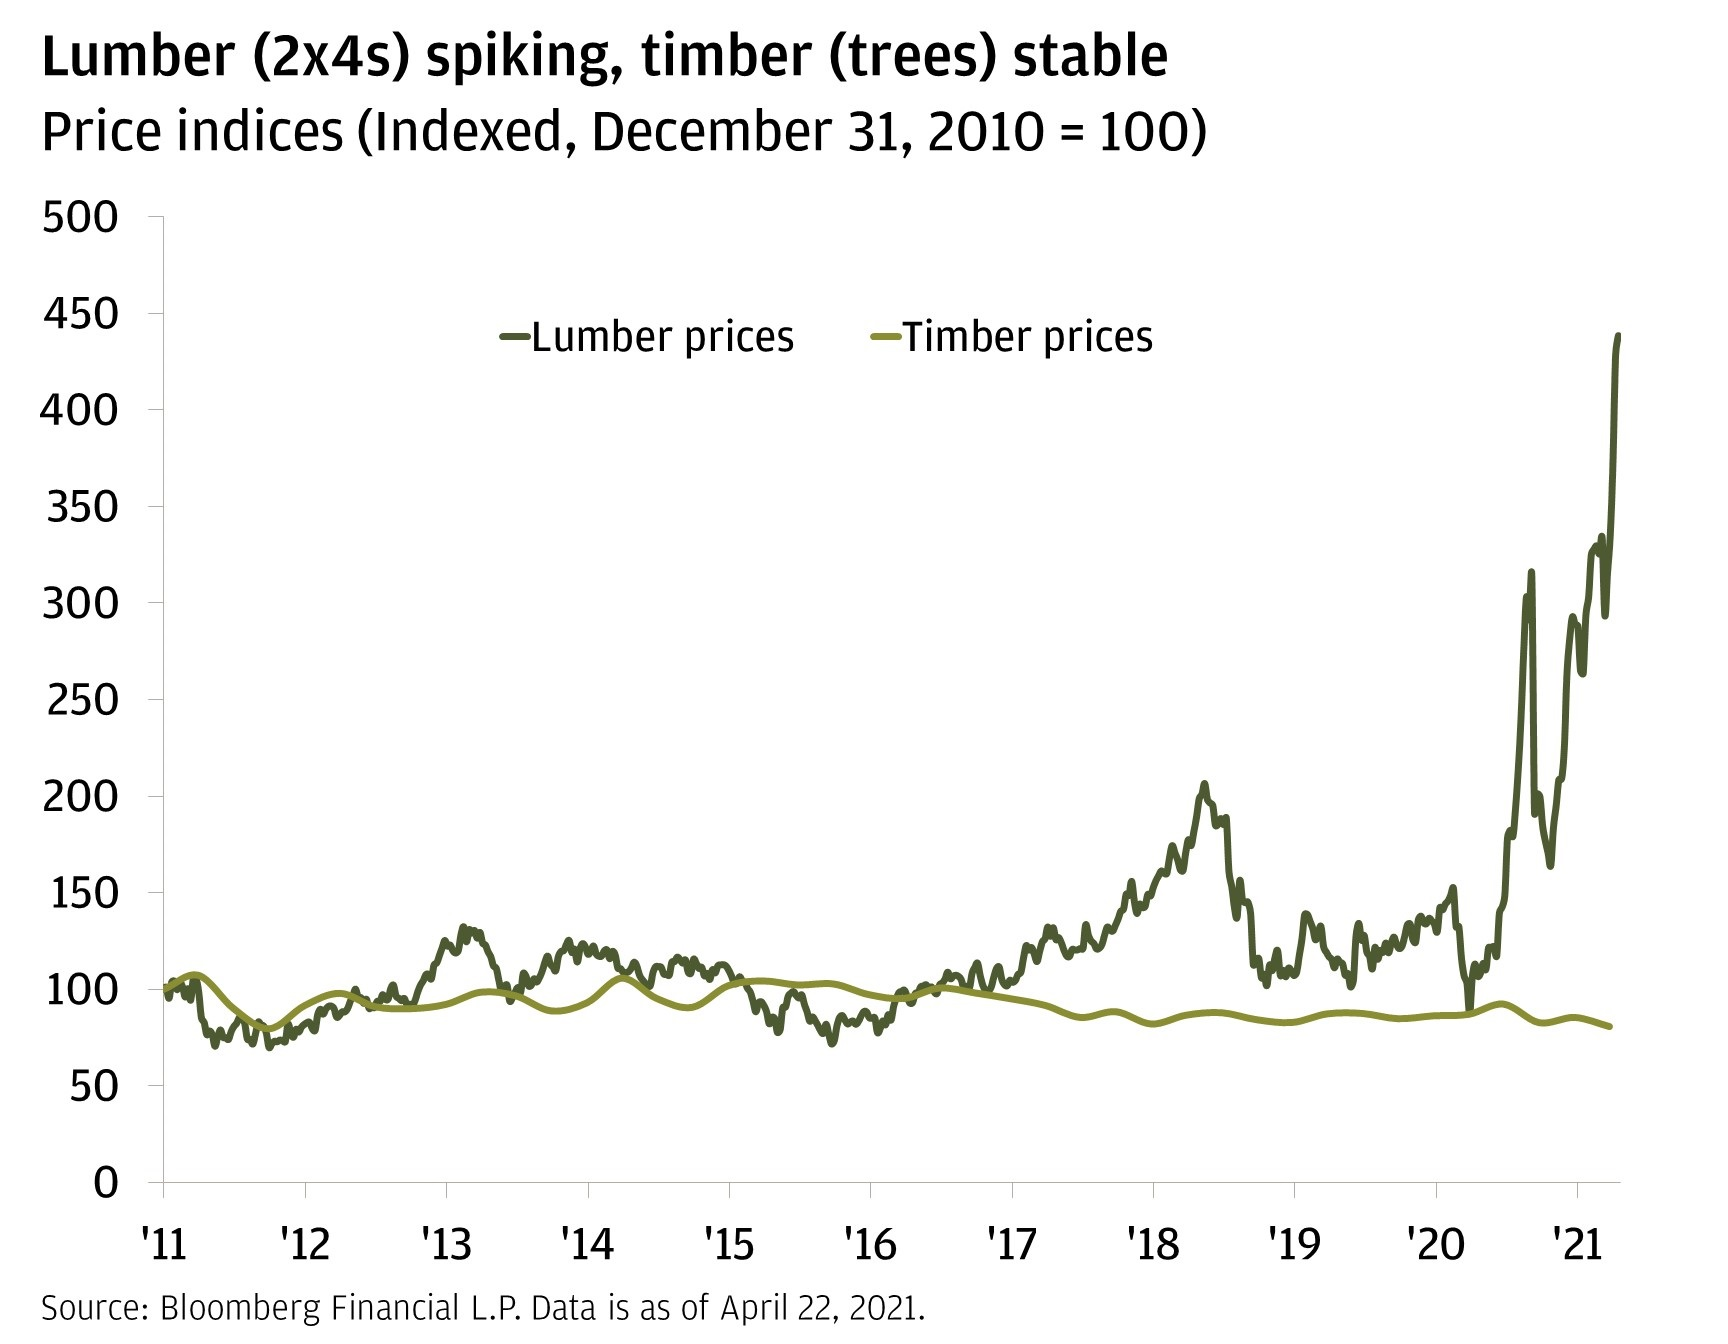 Chart 3: This chart shows the index price level for both lumber and timber such that their value on December 31, 2010, is equal to 100.